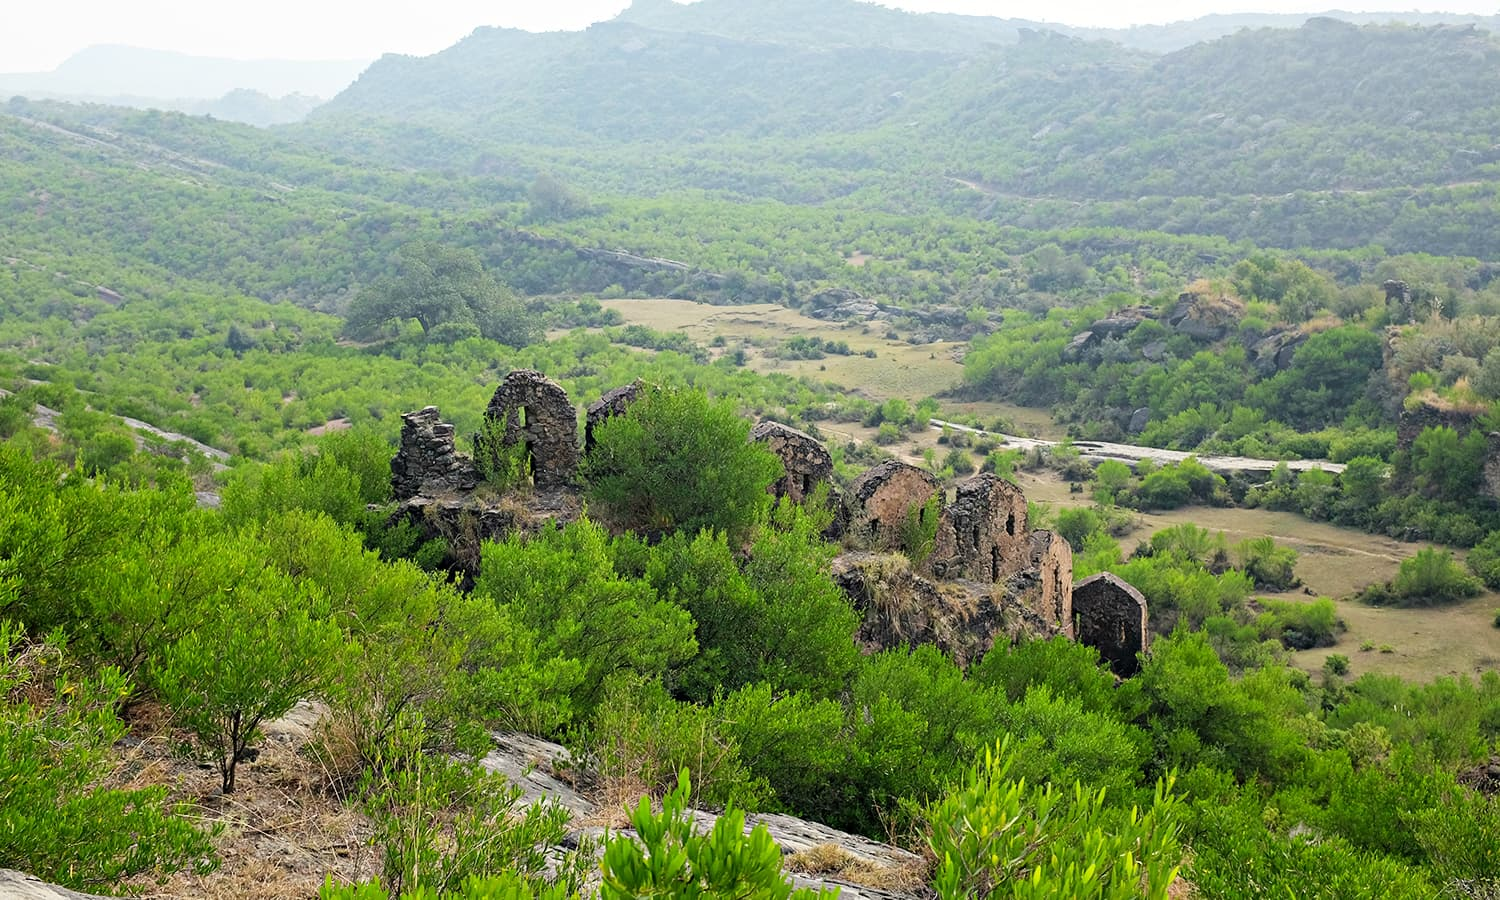 The wall on the Eastern side stands tall in a picturesque setting.